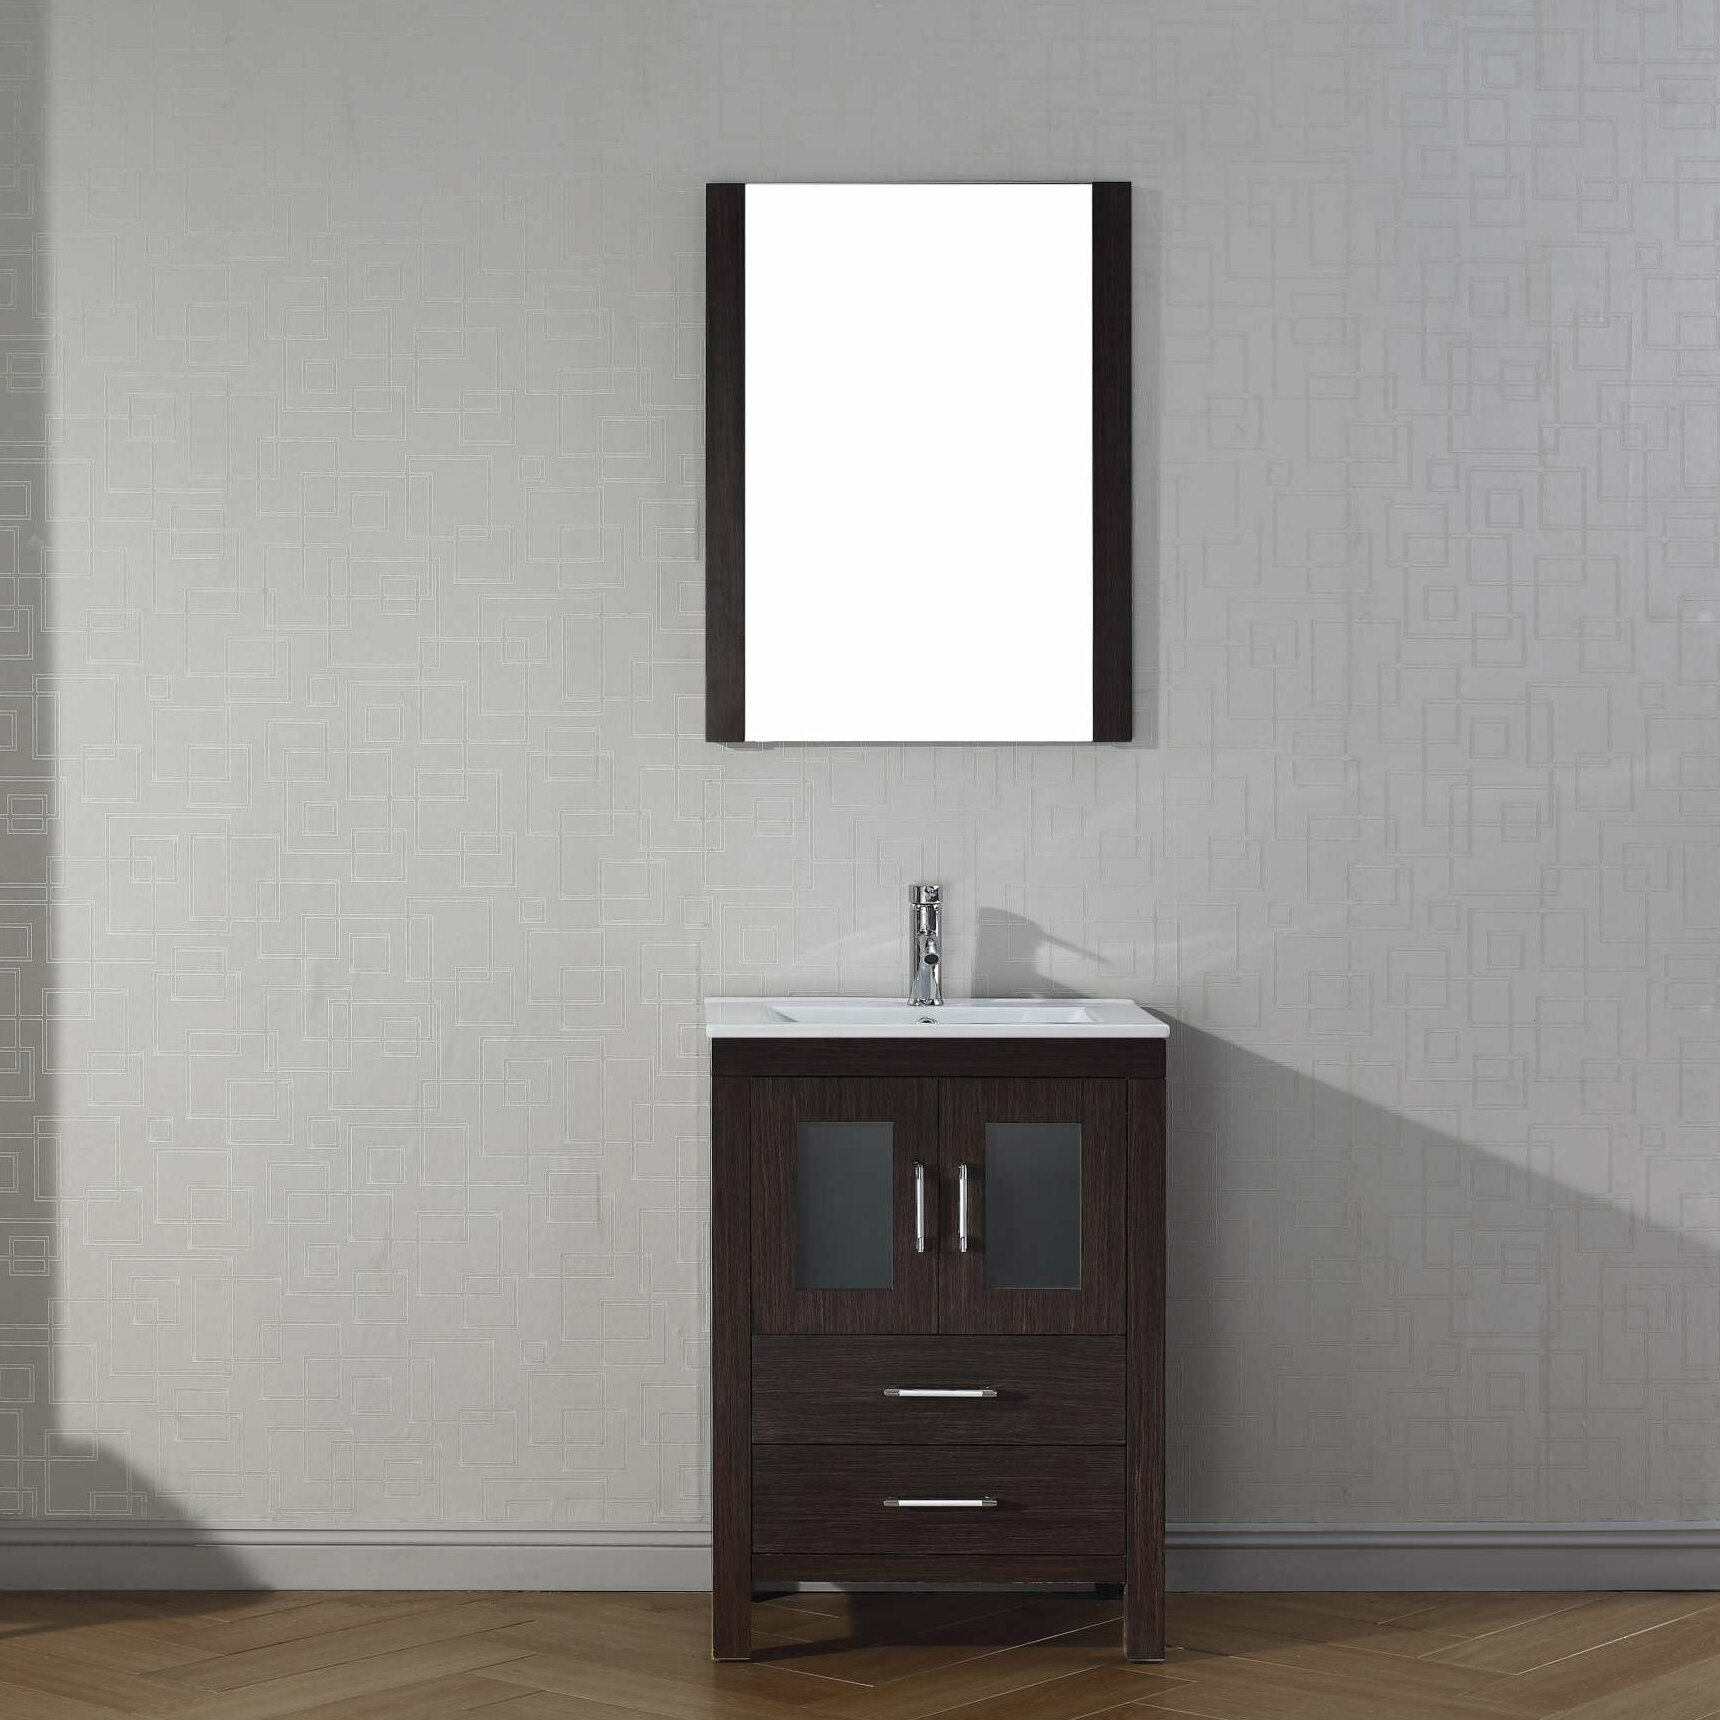 "Virtu Dior 24"" Single Bathroom Vanity Set with Mirror & Reviews"